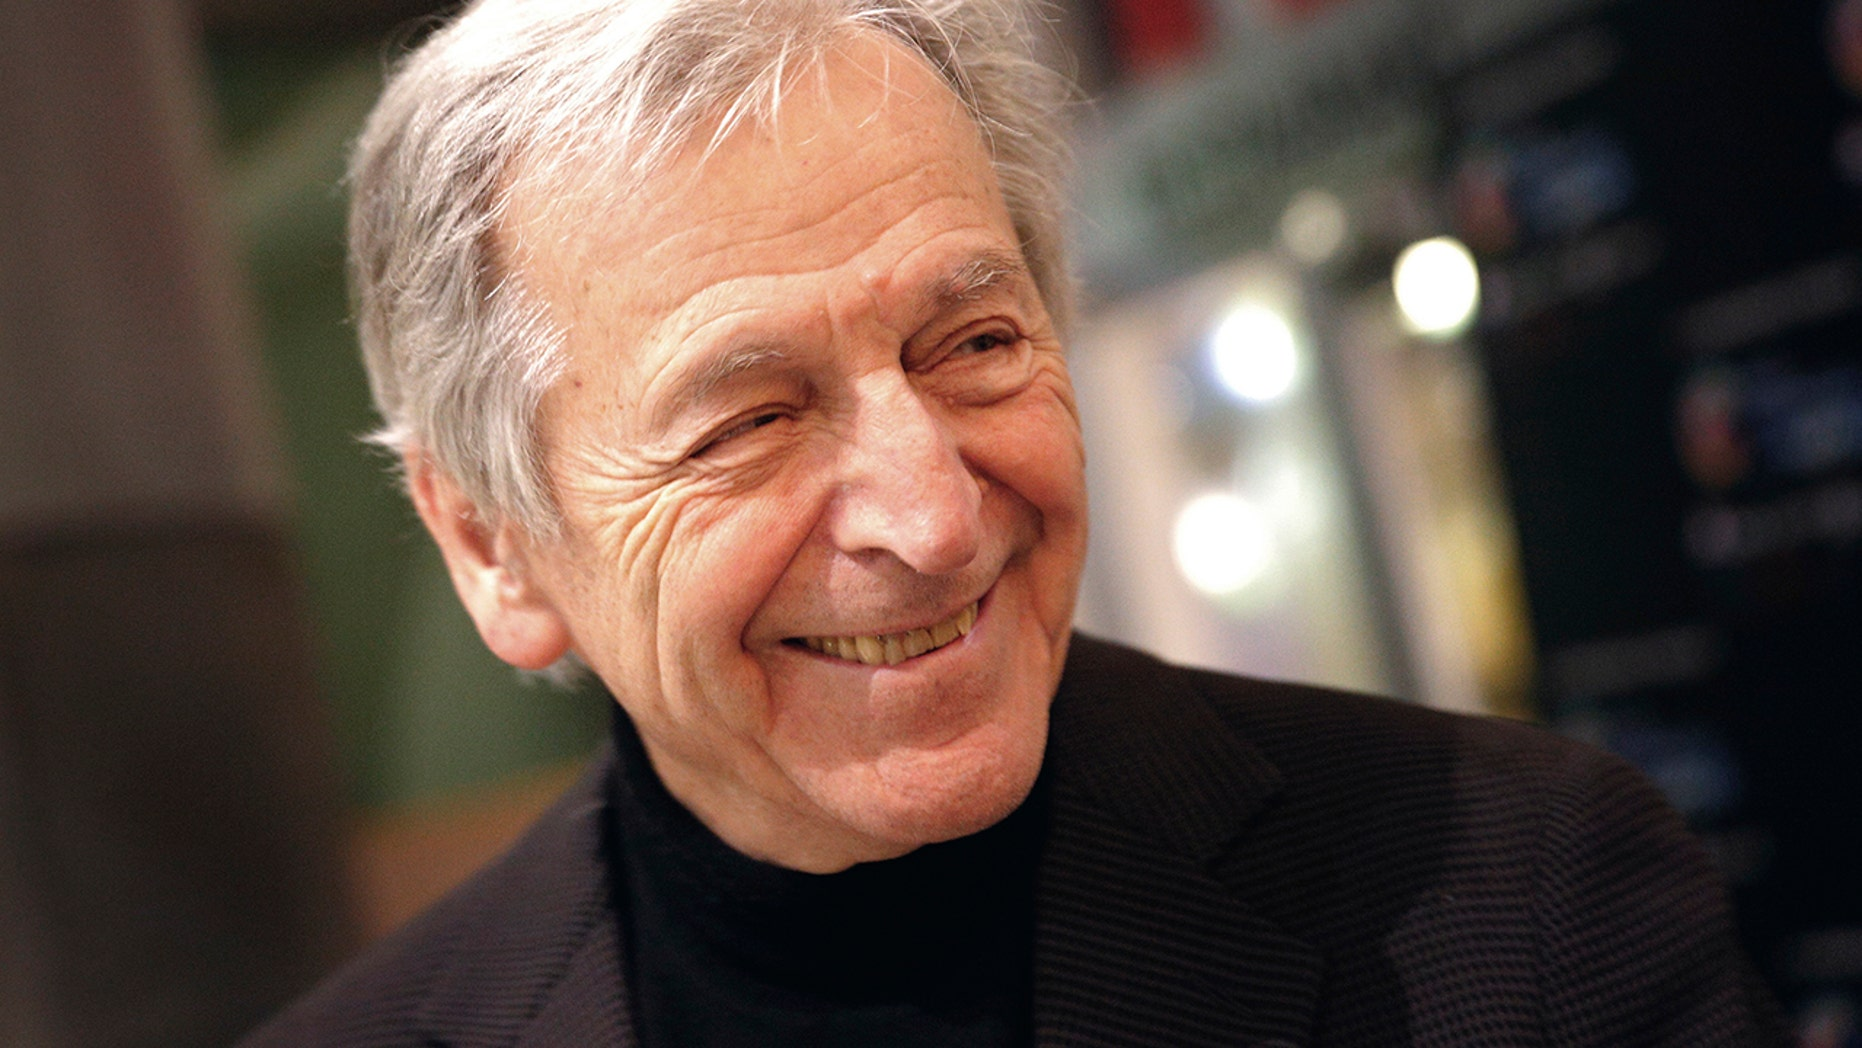 The news agency withdrew a report that Oscar-winning director Costa-Gavras, here in a 2016 file photo, had died.